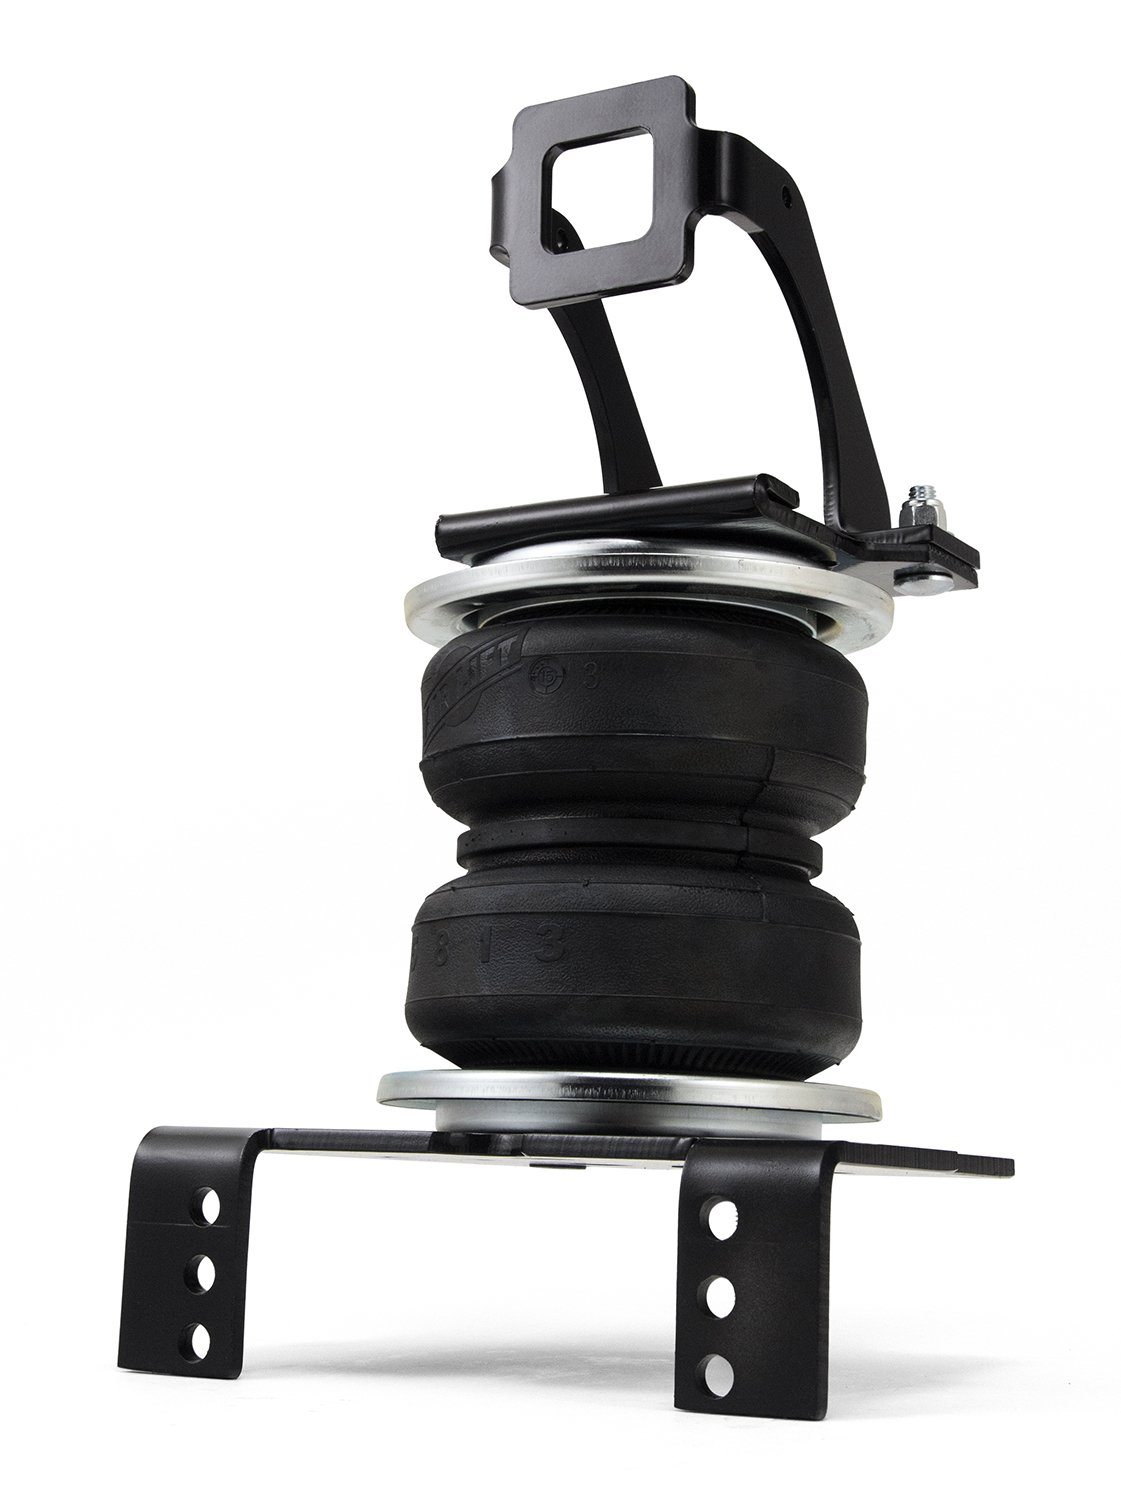 Air Lift 57396 Load Lifter 5000 Rear Air Bags Kit for 2011 Ford F250 / F350 / F450 4WD by Air Lift (Image #4)